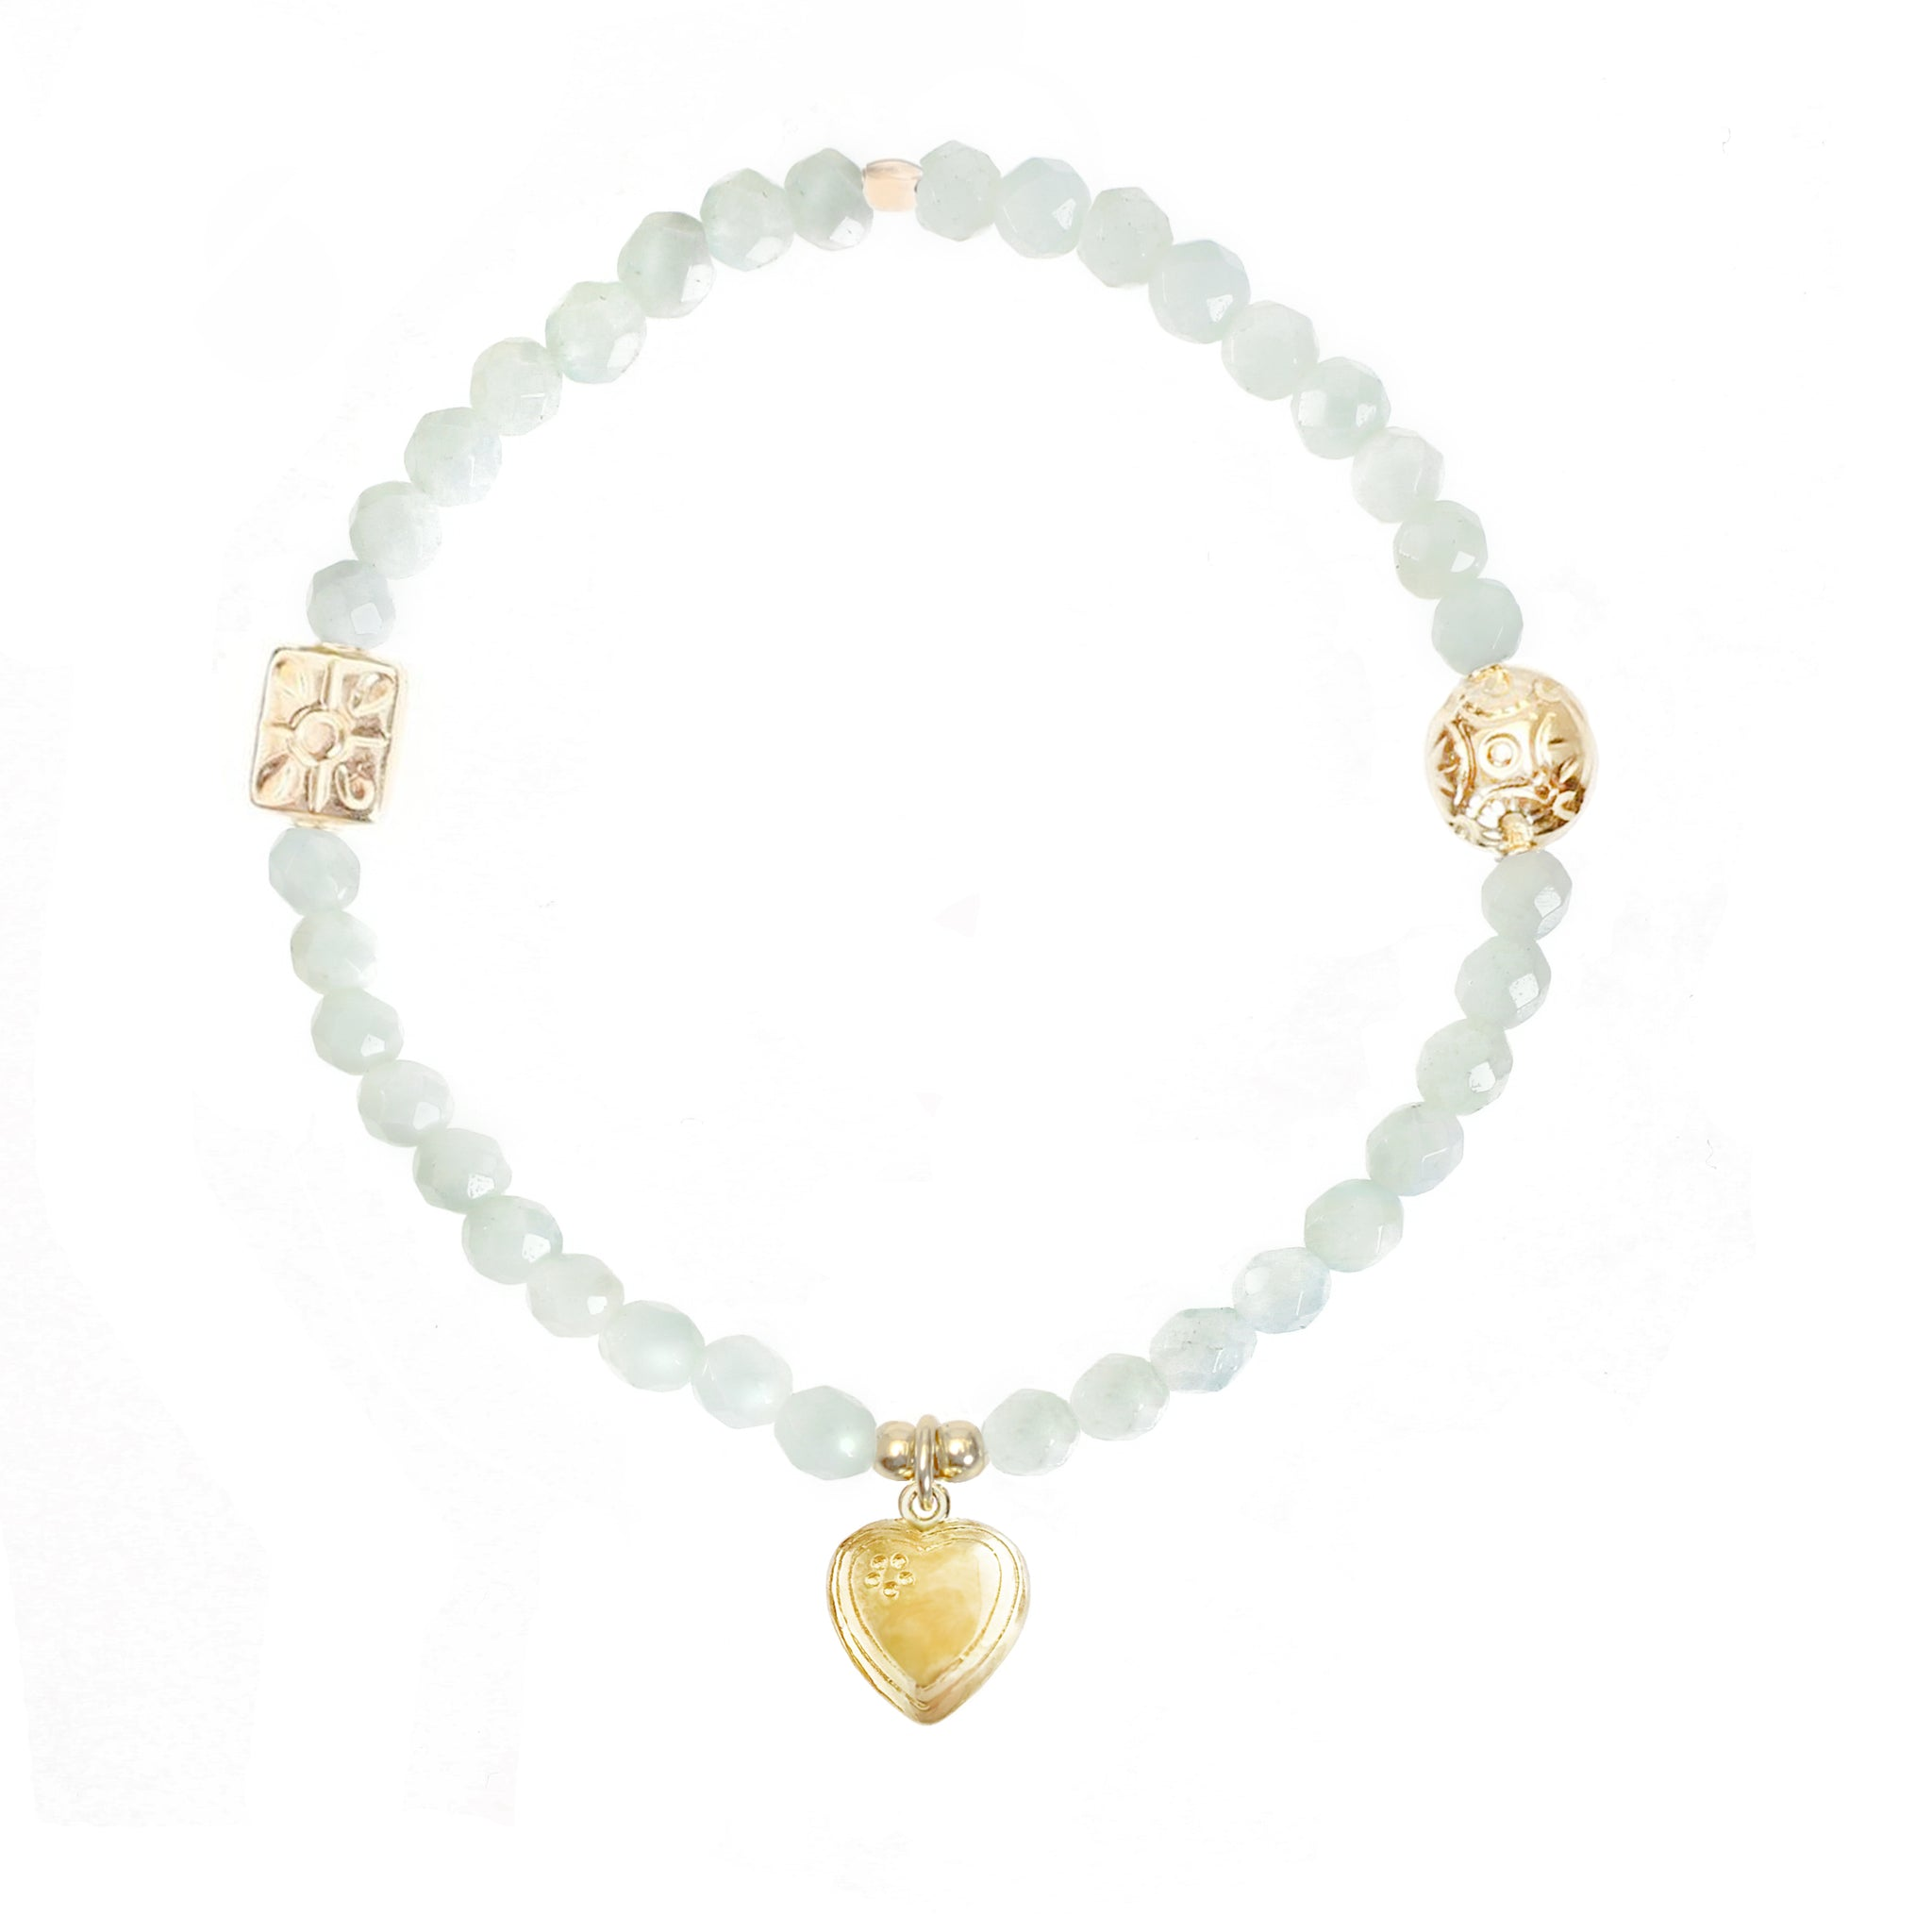 STERLING SILVER BEADED STRETCH STACKING BRACELET,MINI HEART CHARM,AMAZONITE